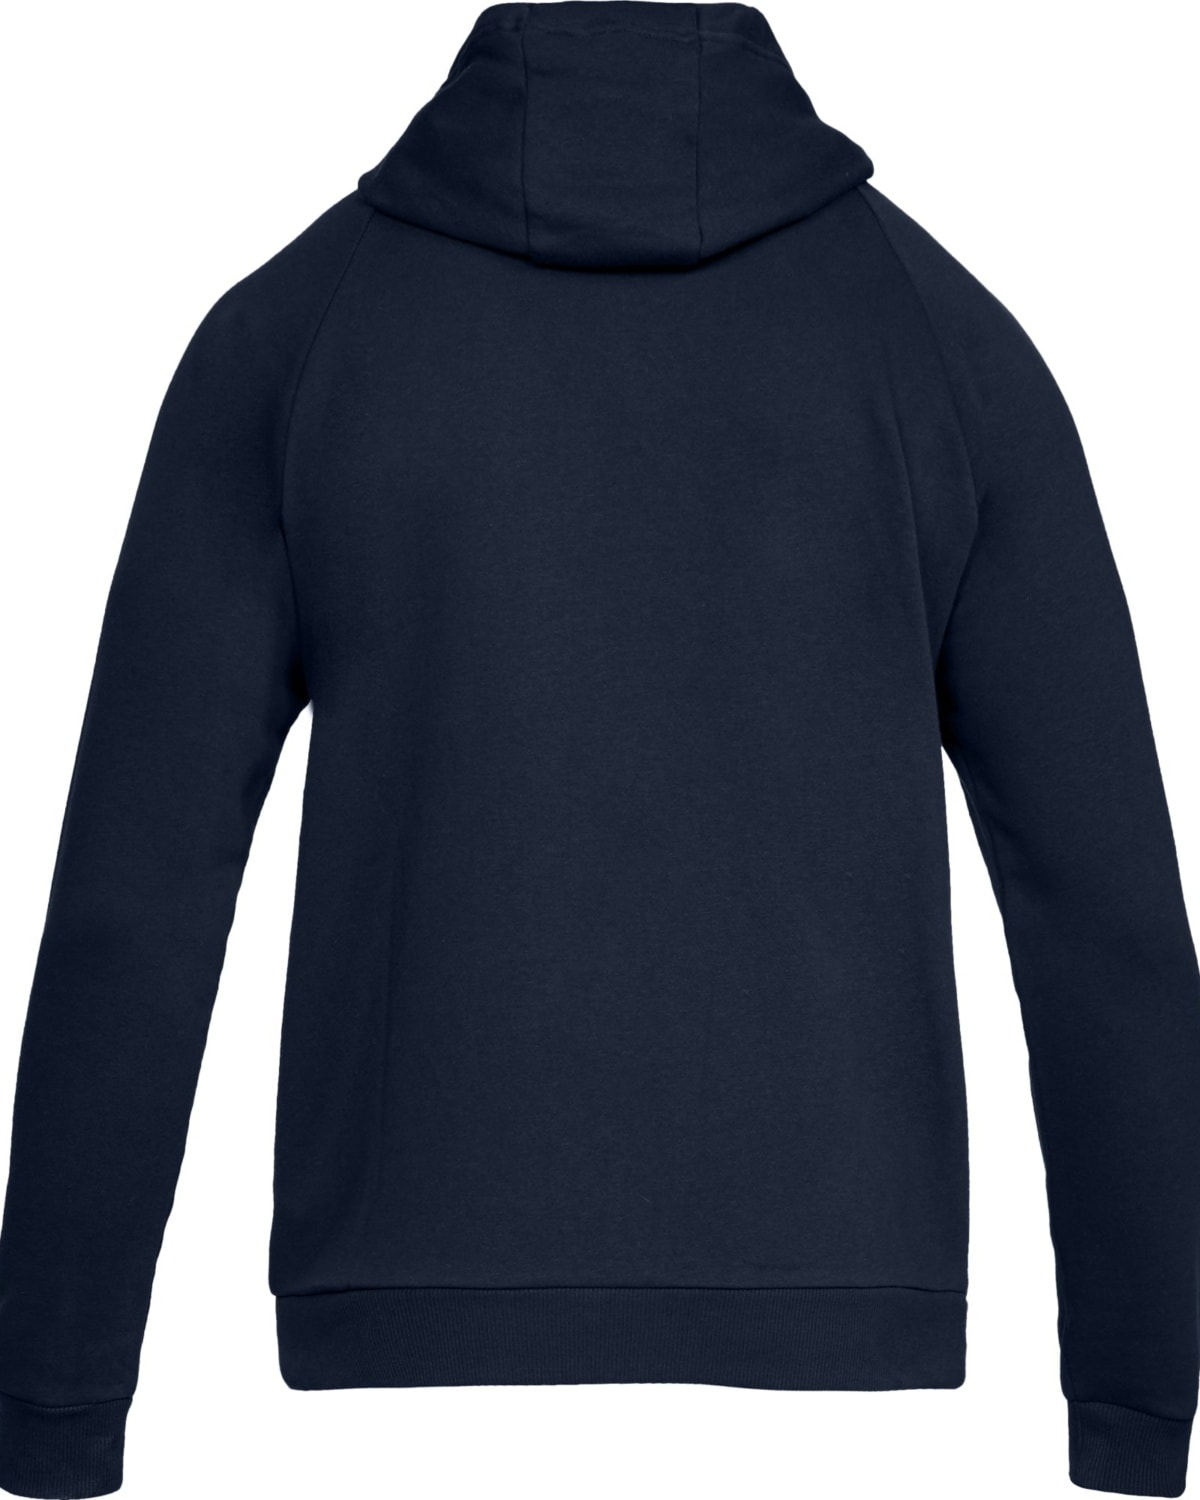 Under Armour Rival Fleece Hoody 1320737-408_HB